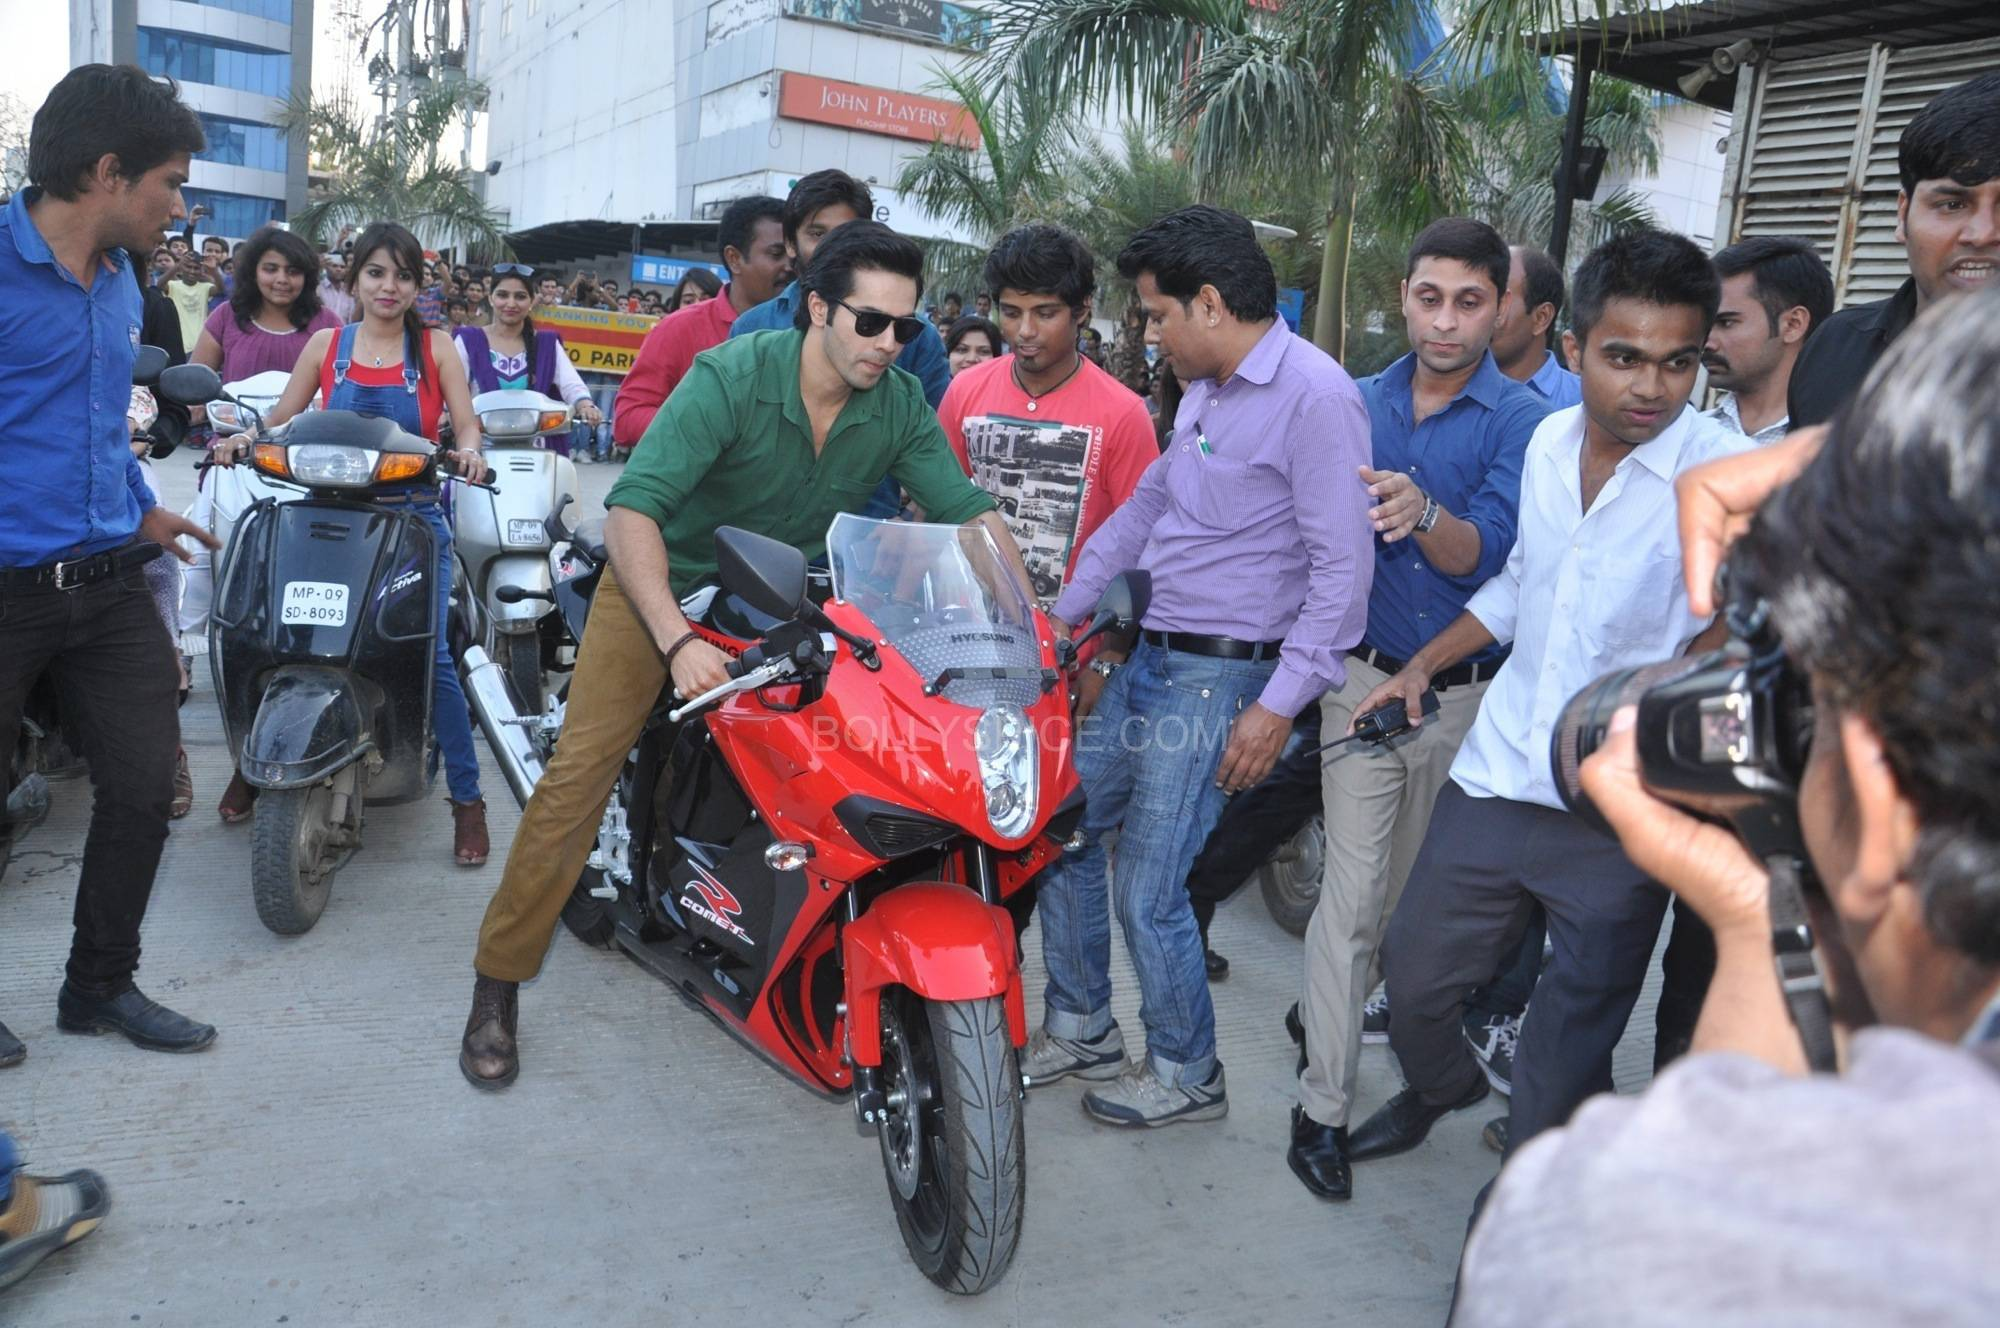 Varun Dhawan at the bike rally Varun Dhawan, Ileana D'cruz and Nargis Fakri promote Main Tera Hero in Indore!